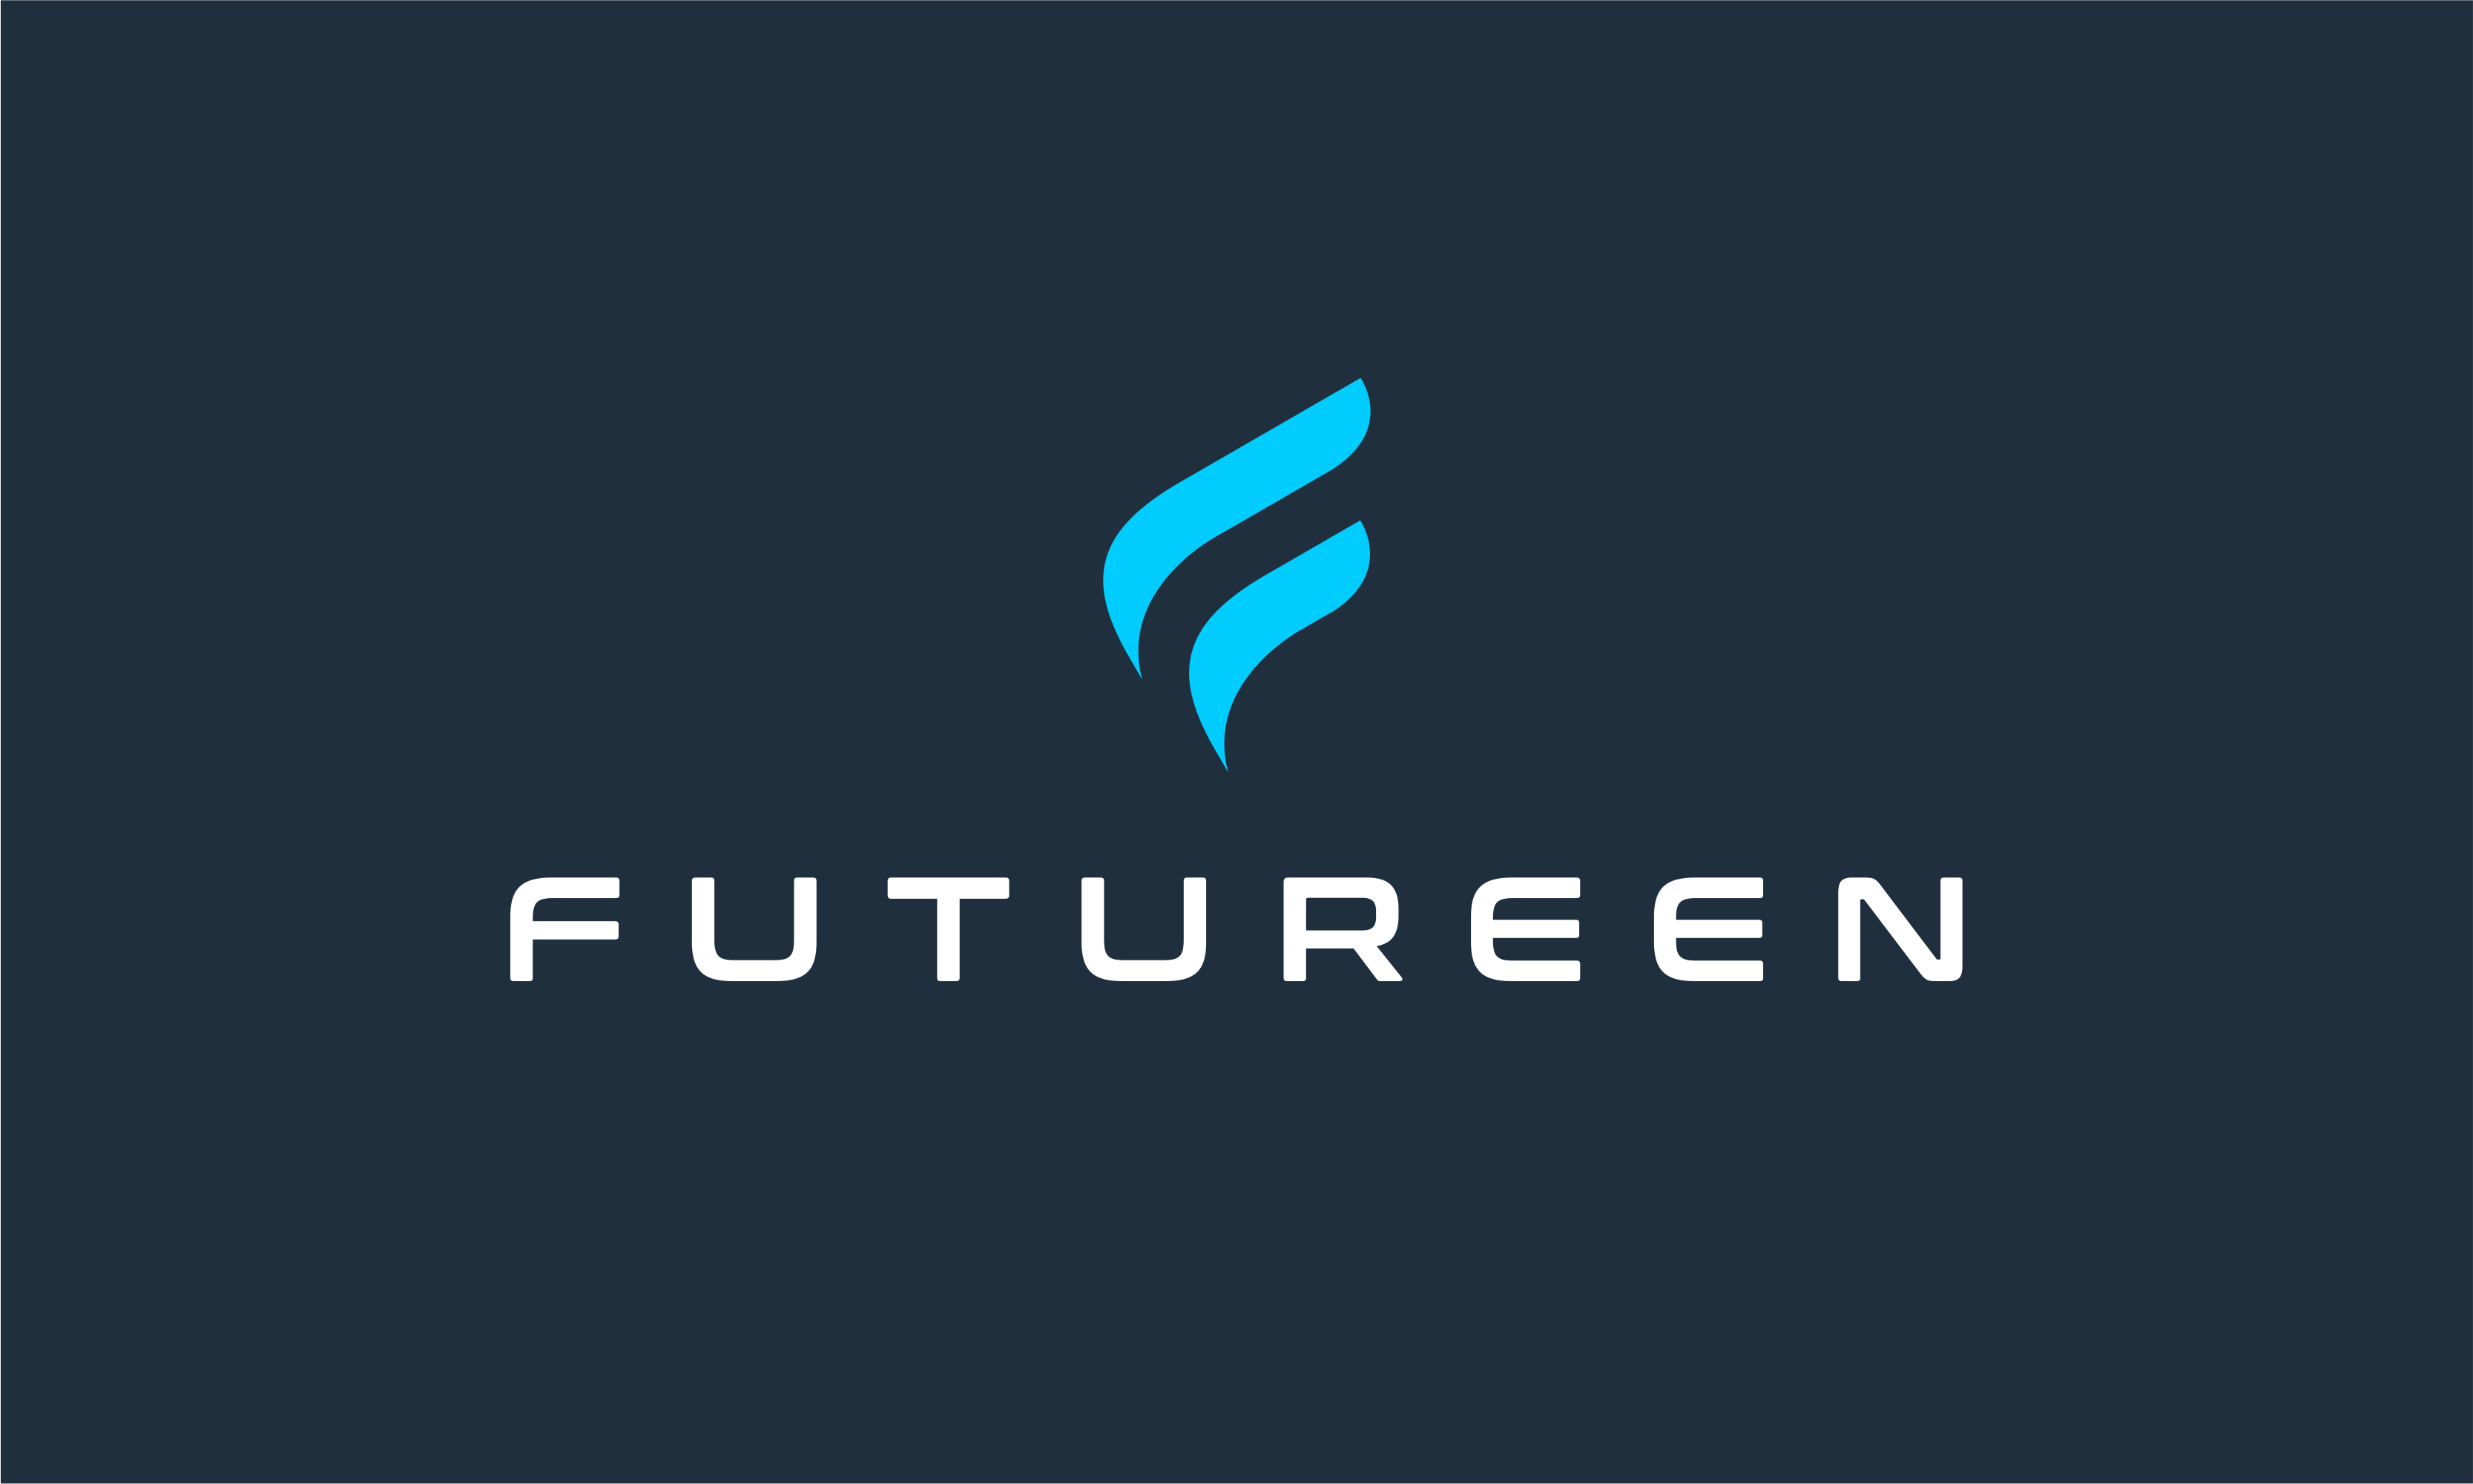 futureen logo